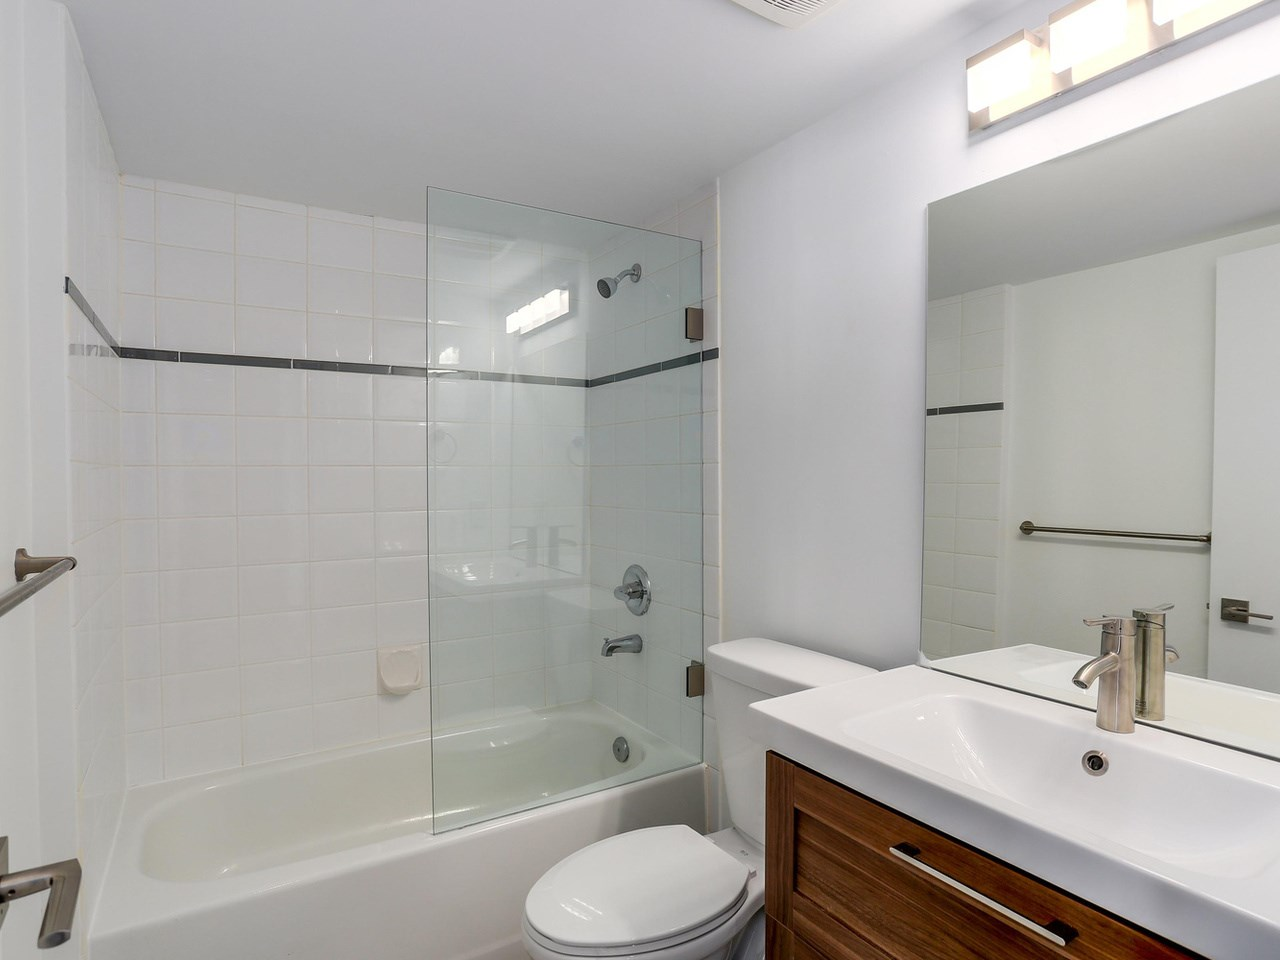 Photo 6: 424 5880 DOVER CRESCENT in Richmond: Riverdale RI Condo for sale : MLS(r) # R2107709